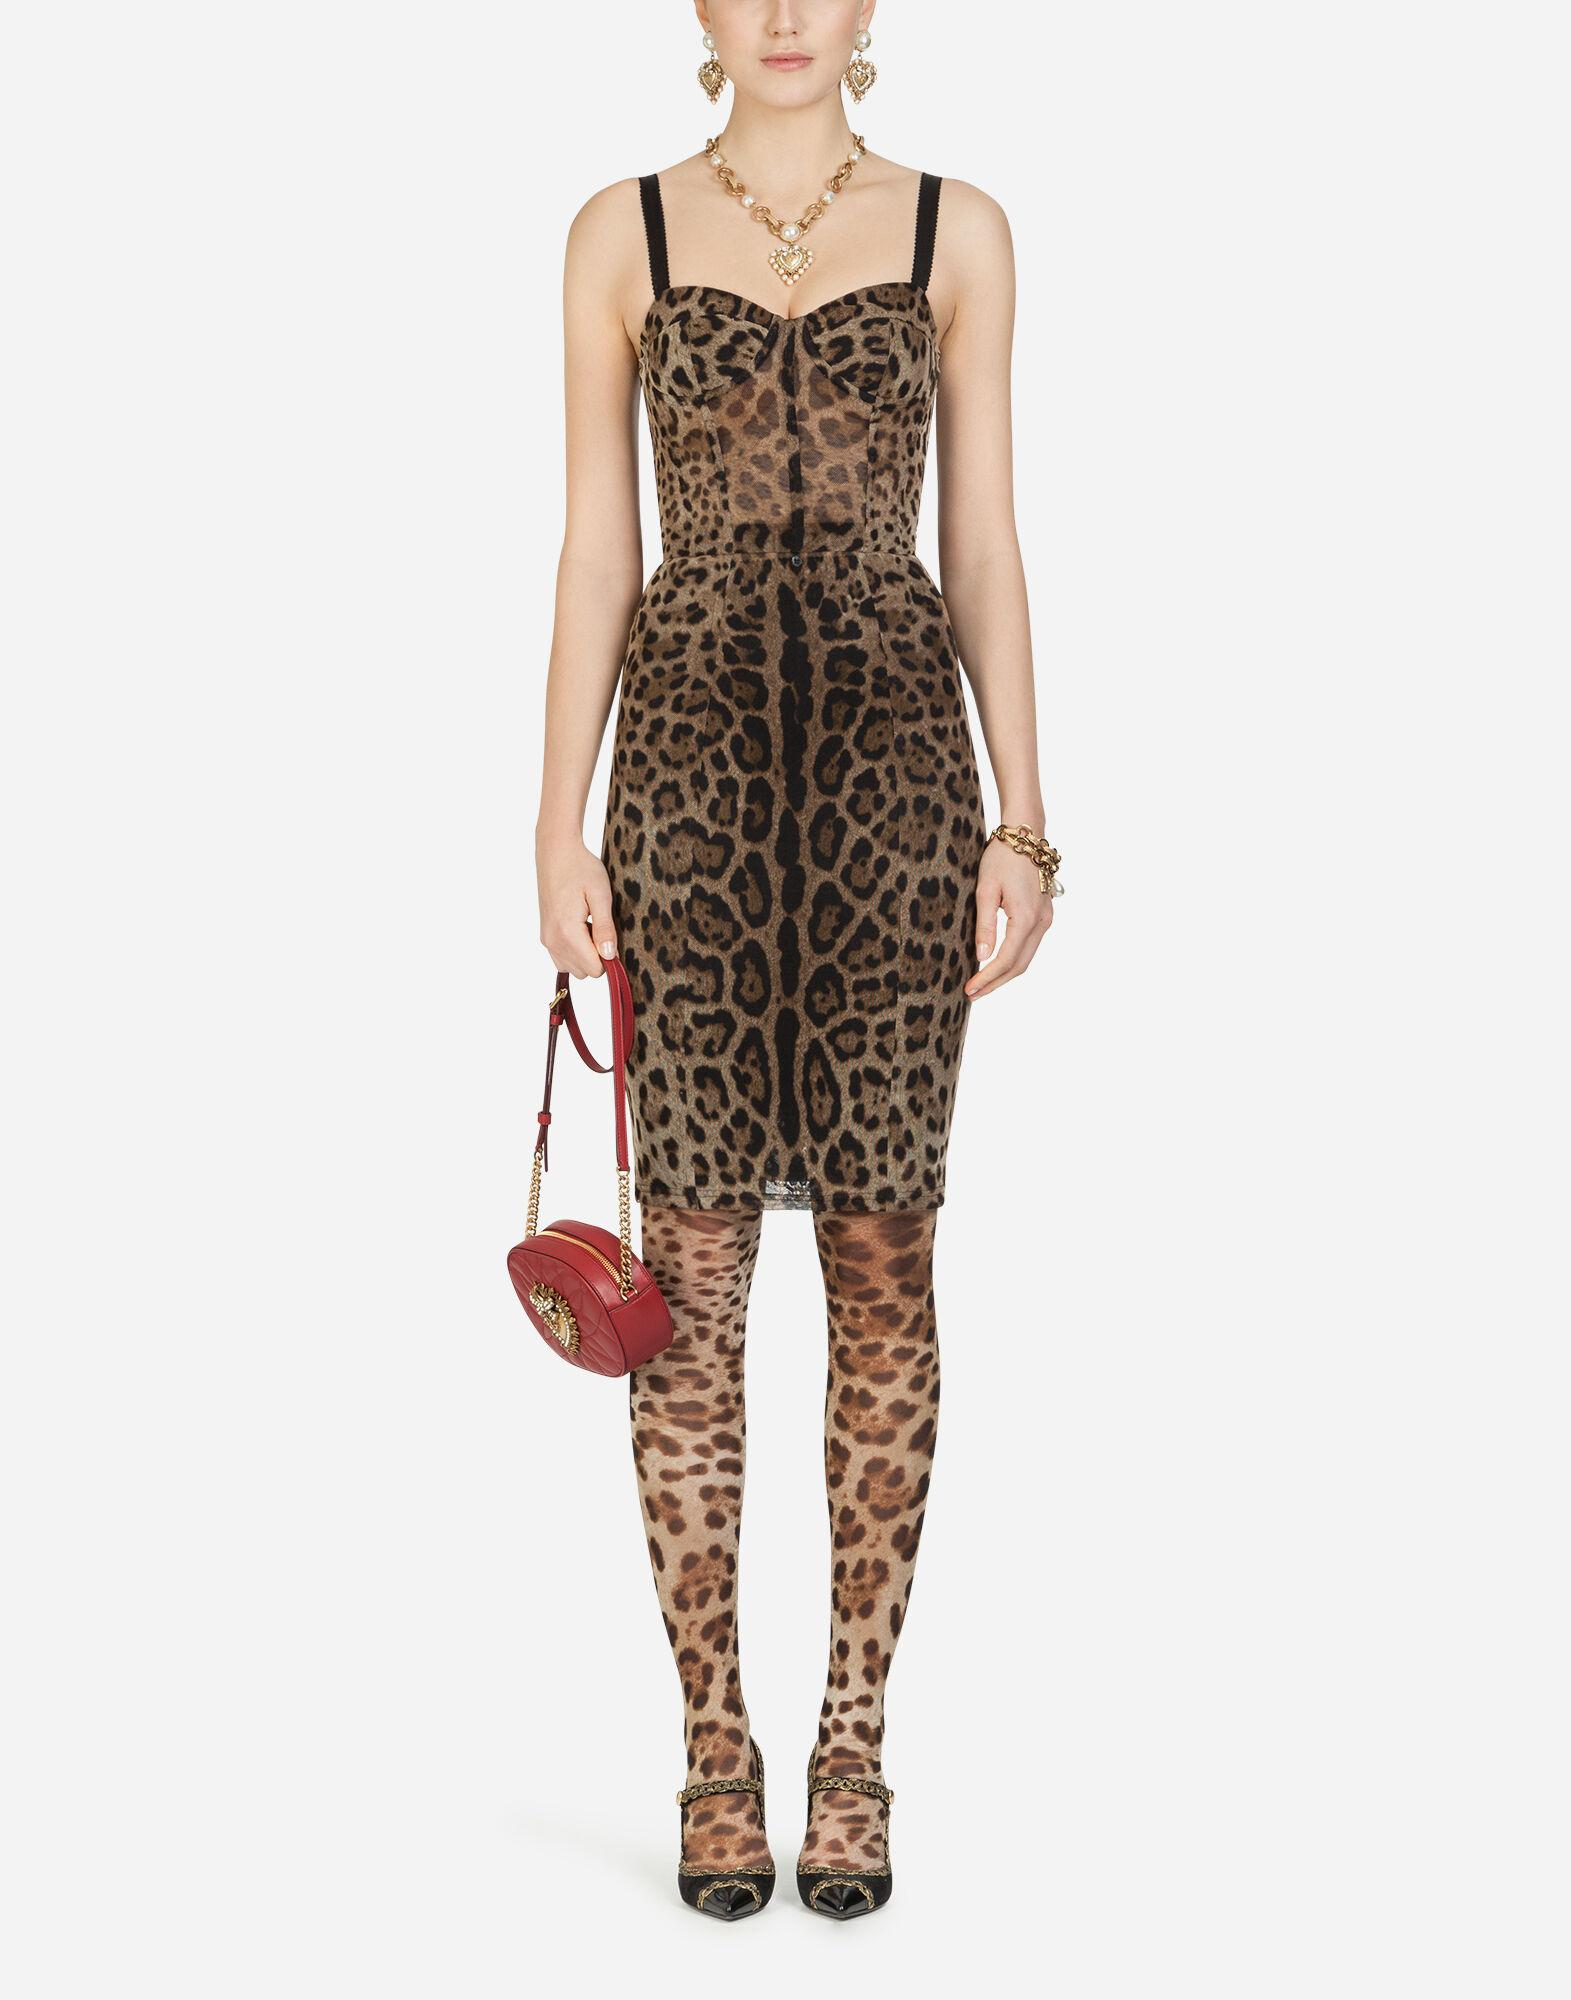 Tulle midi bustier dress with leopard print